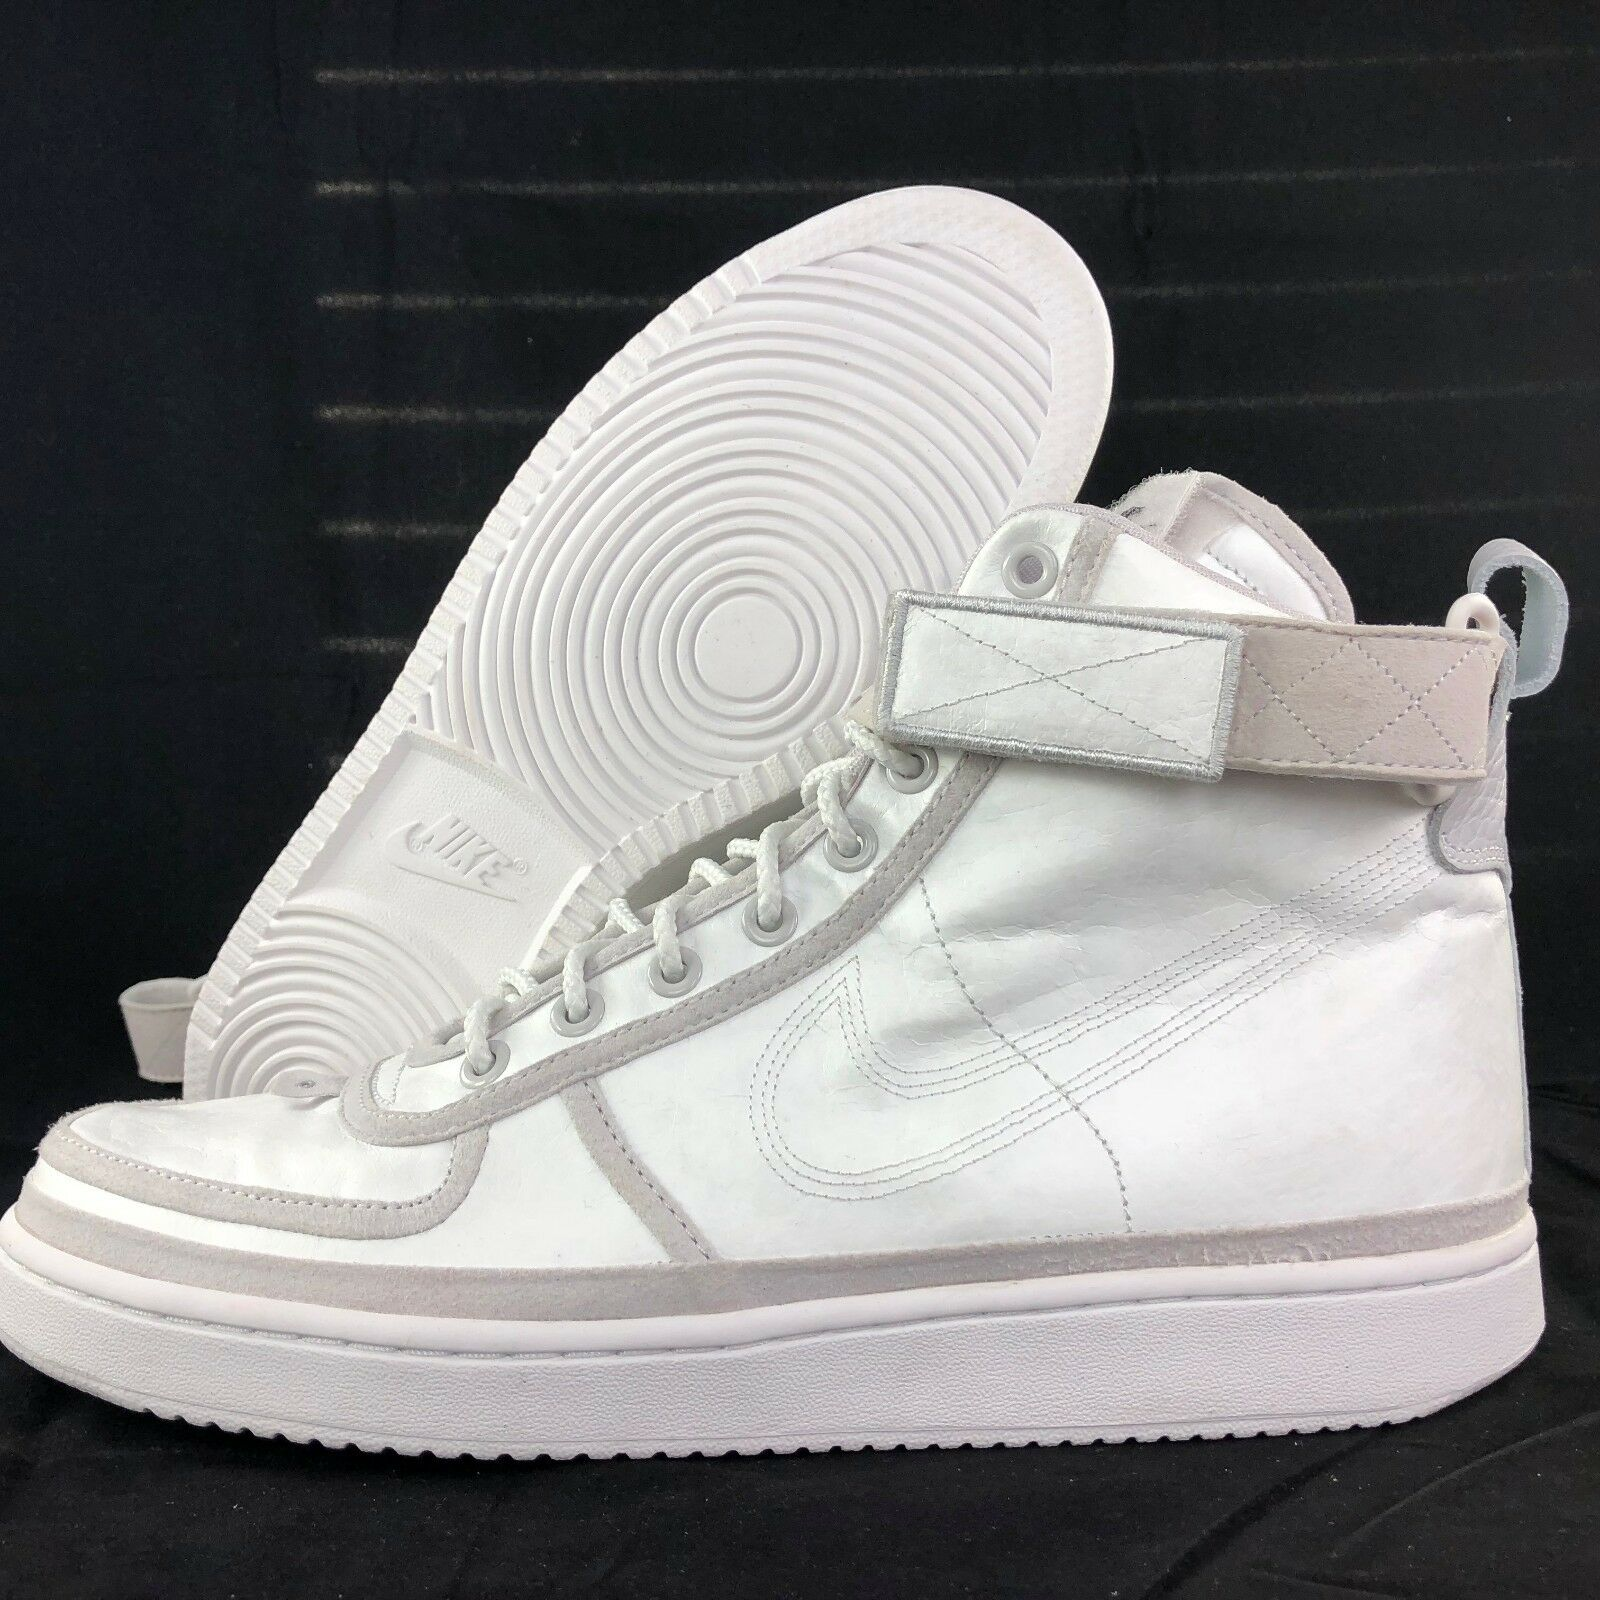 Nike Vandal High Supreme AS QS All Star Vast Grey White AQ0113-001 Men's 9.5-13 The latest discount shoes for men and women